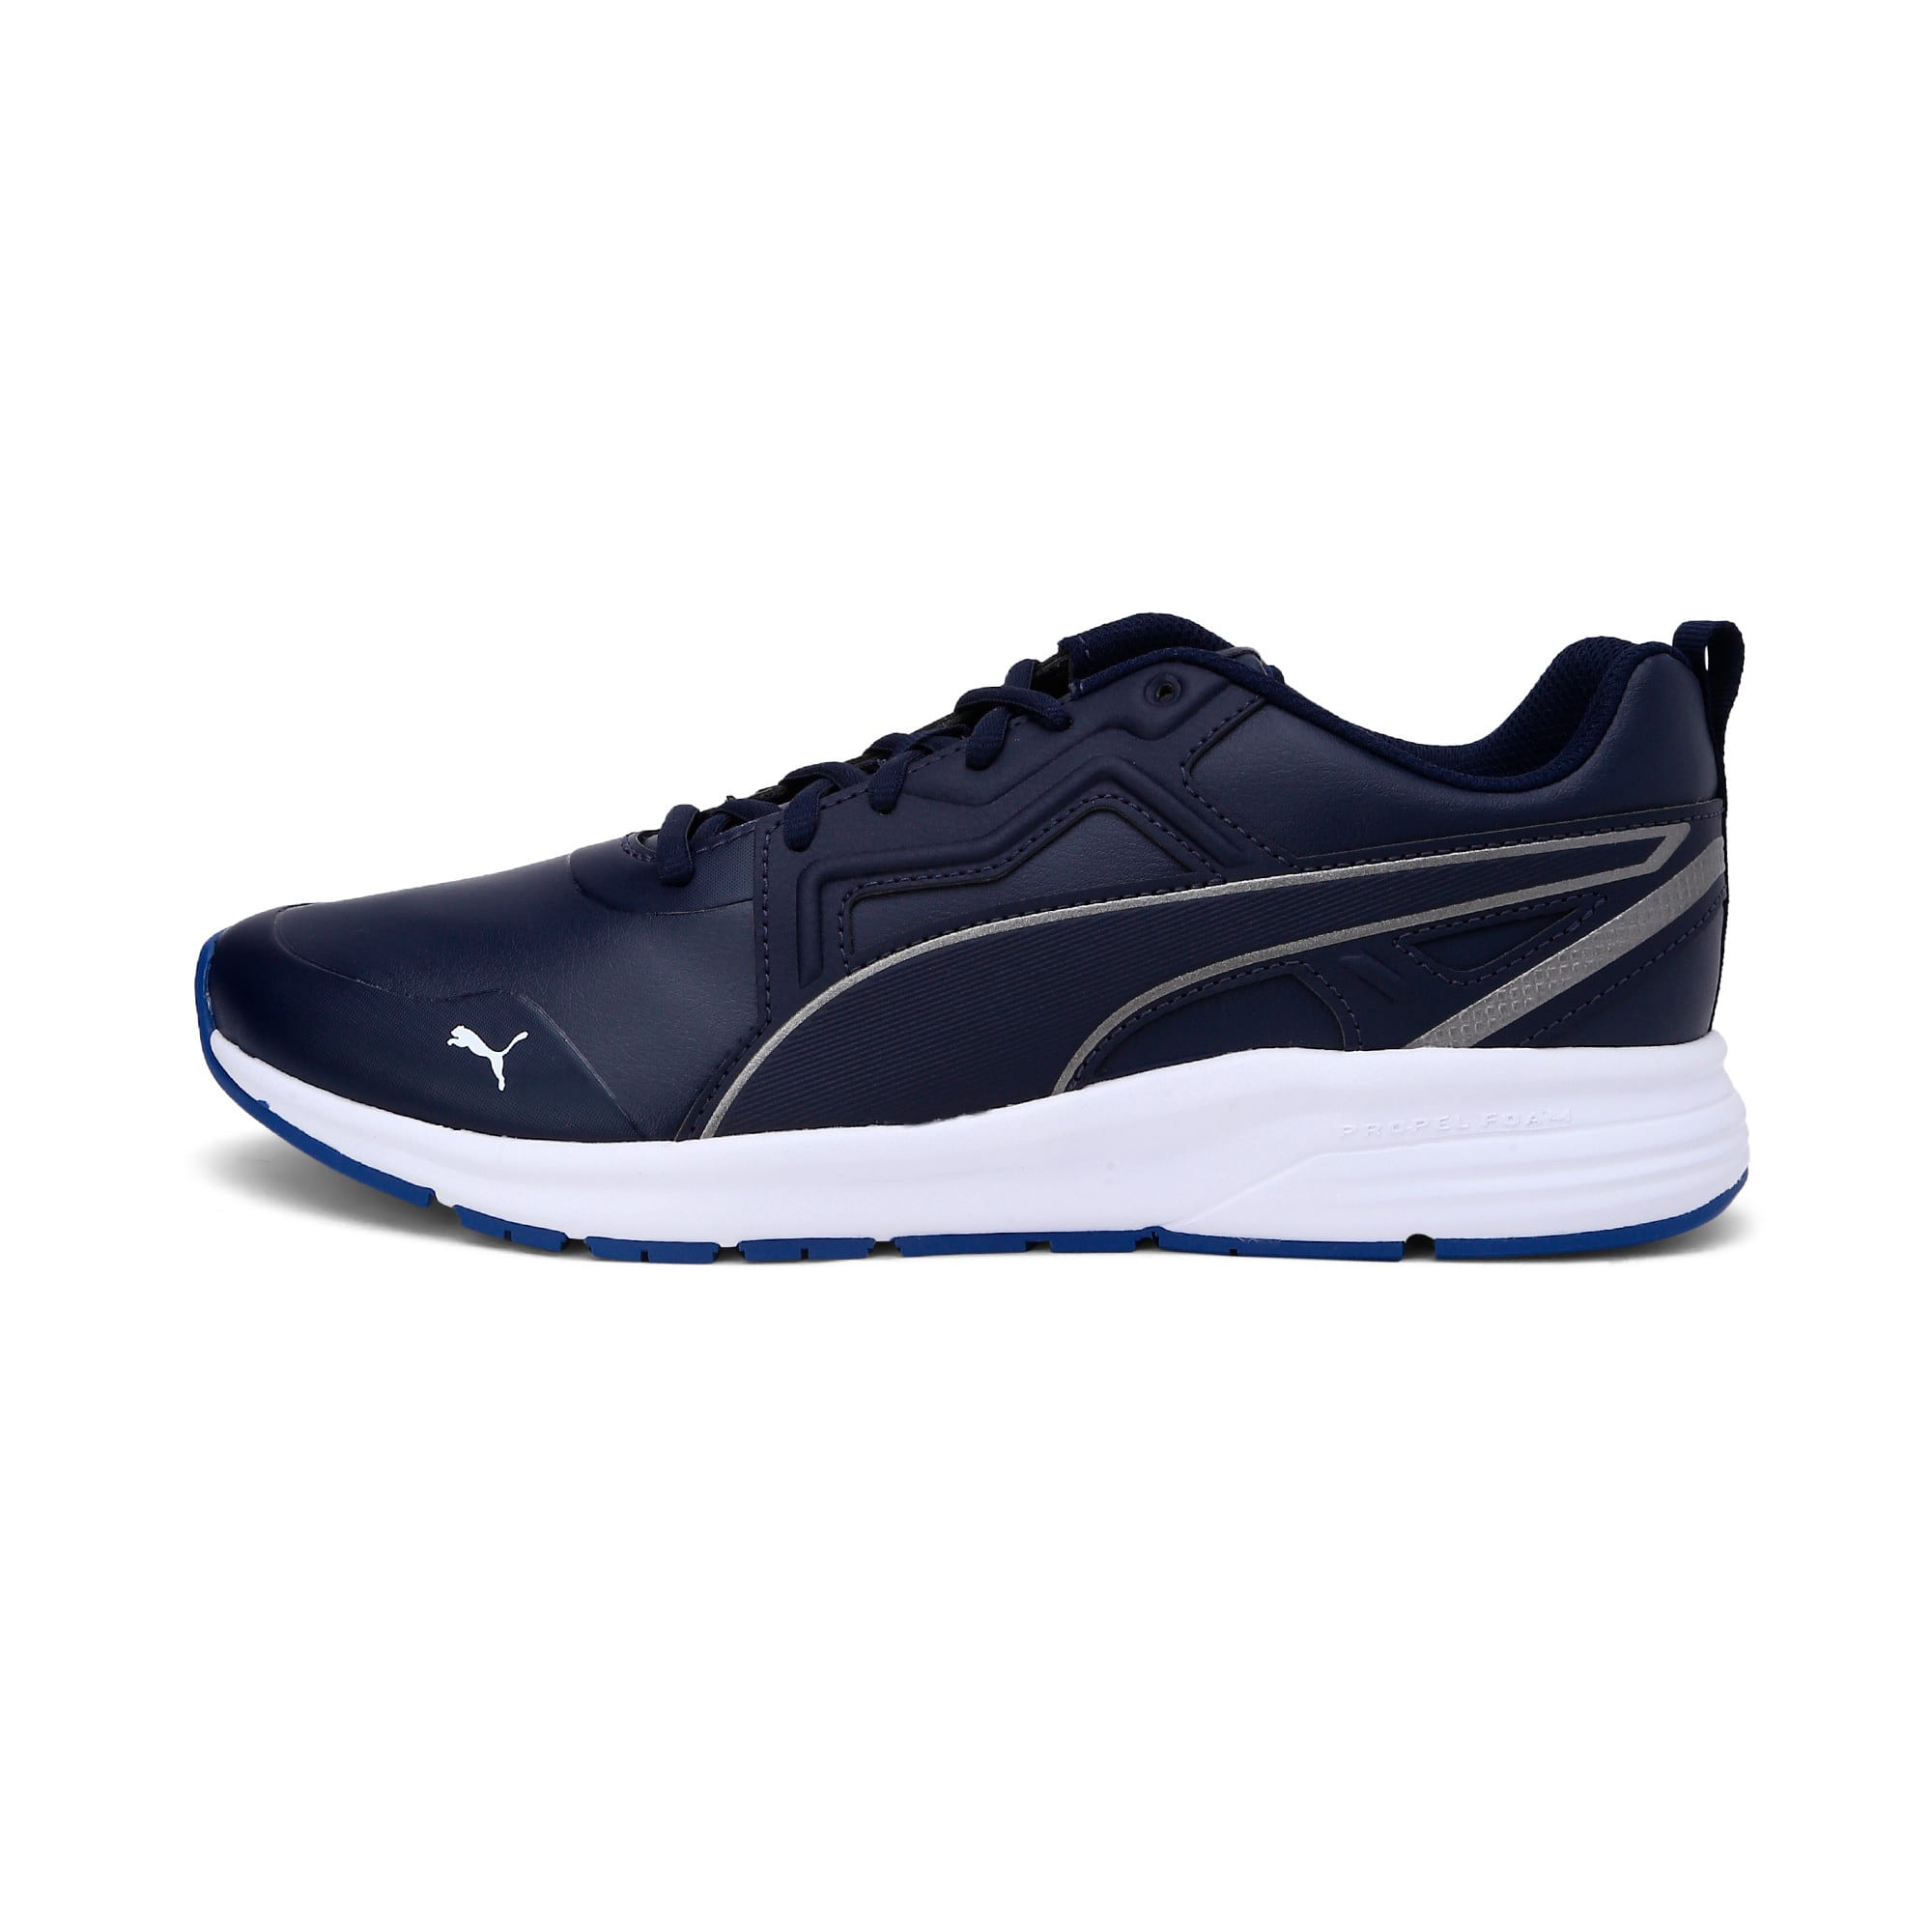 Thumbnail 1 of Pure Jogger SL Trainers, Peacoat-Silver-White-Blue, medium-IND